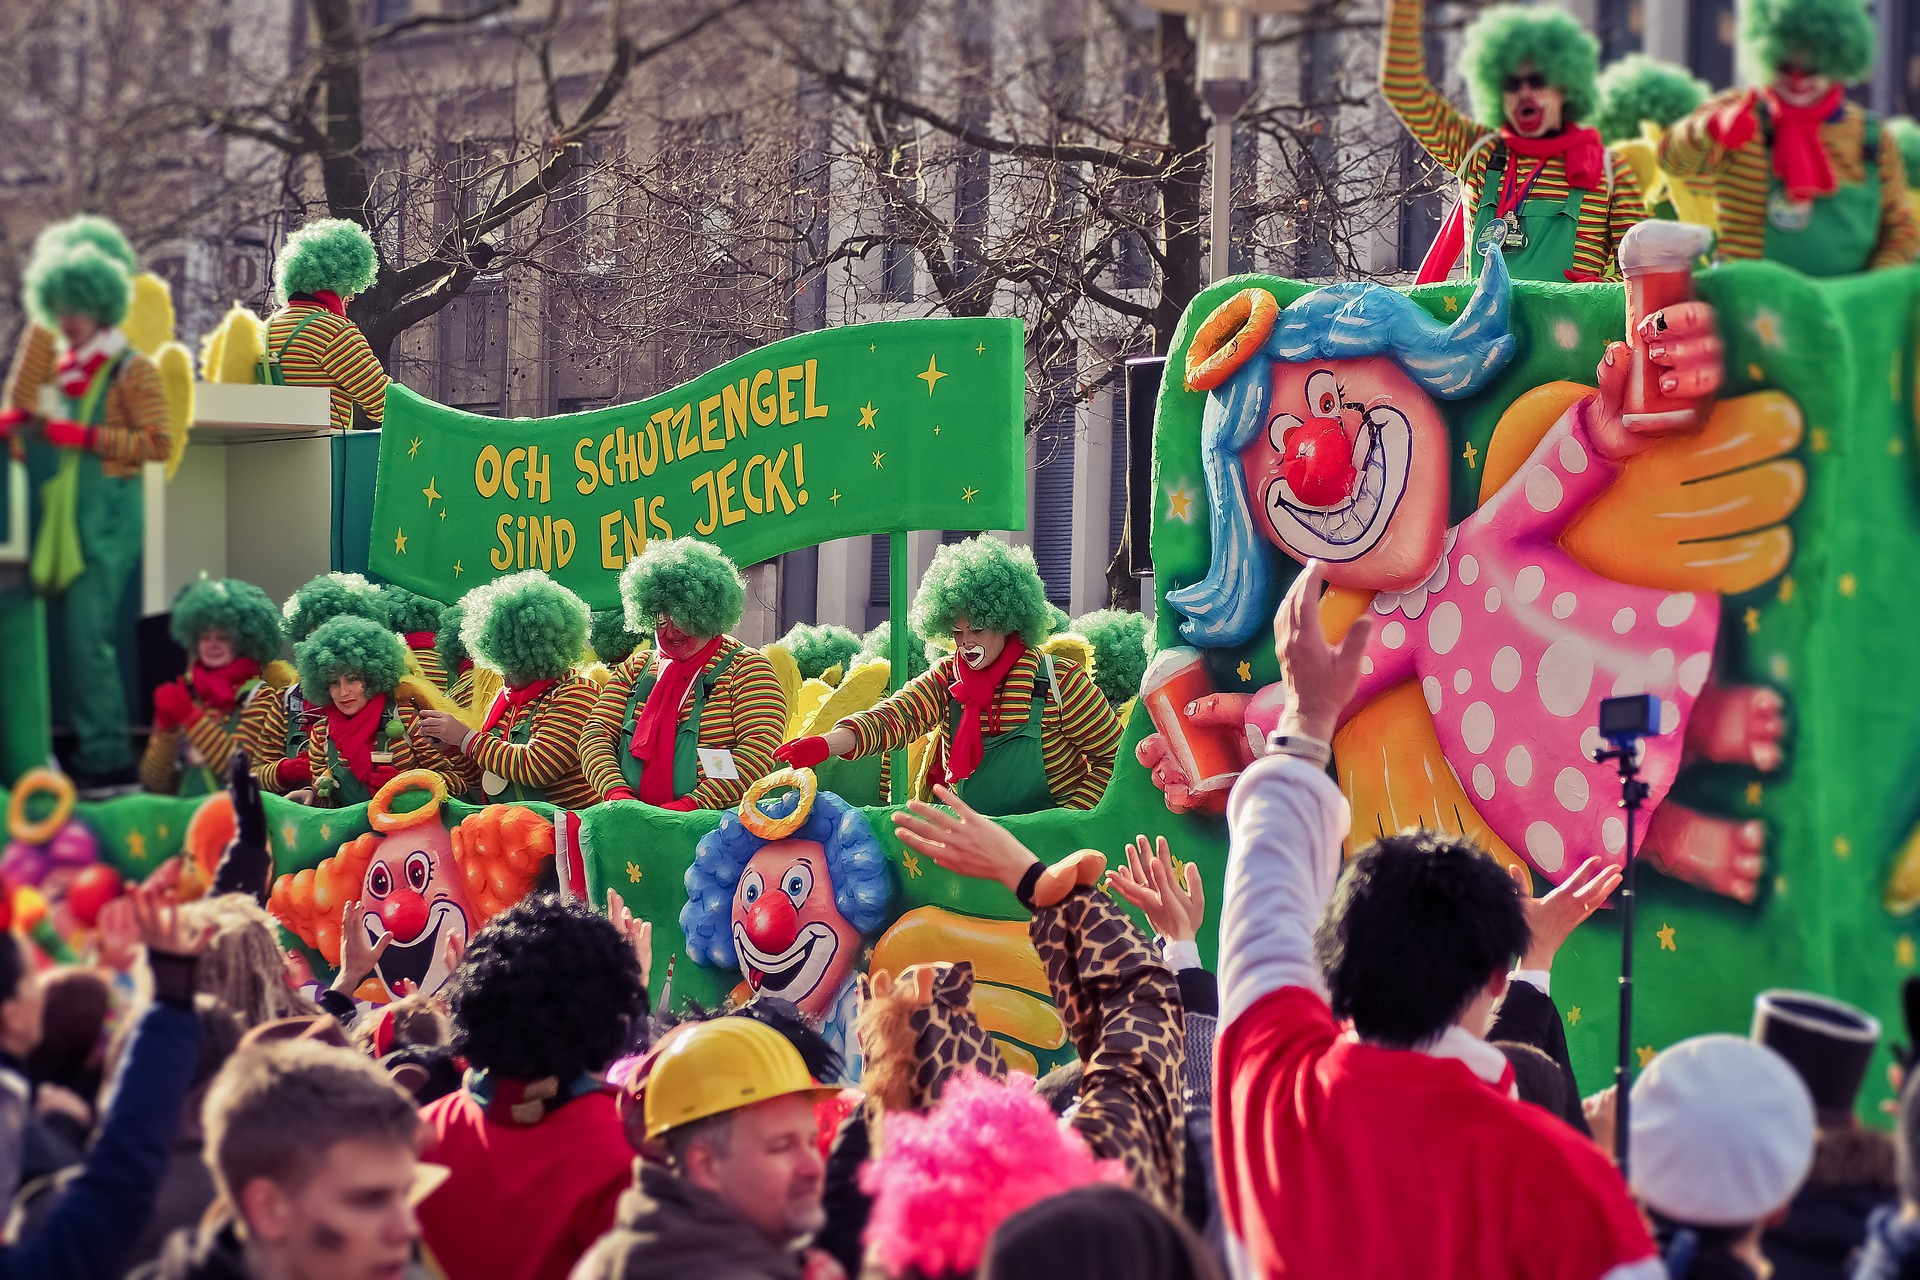 Rose Monday procession - Carnival in Delbrück